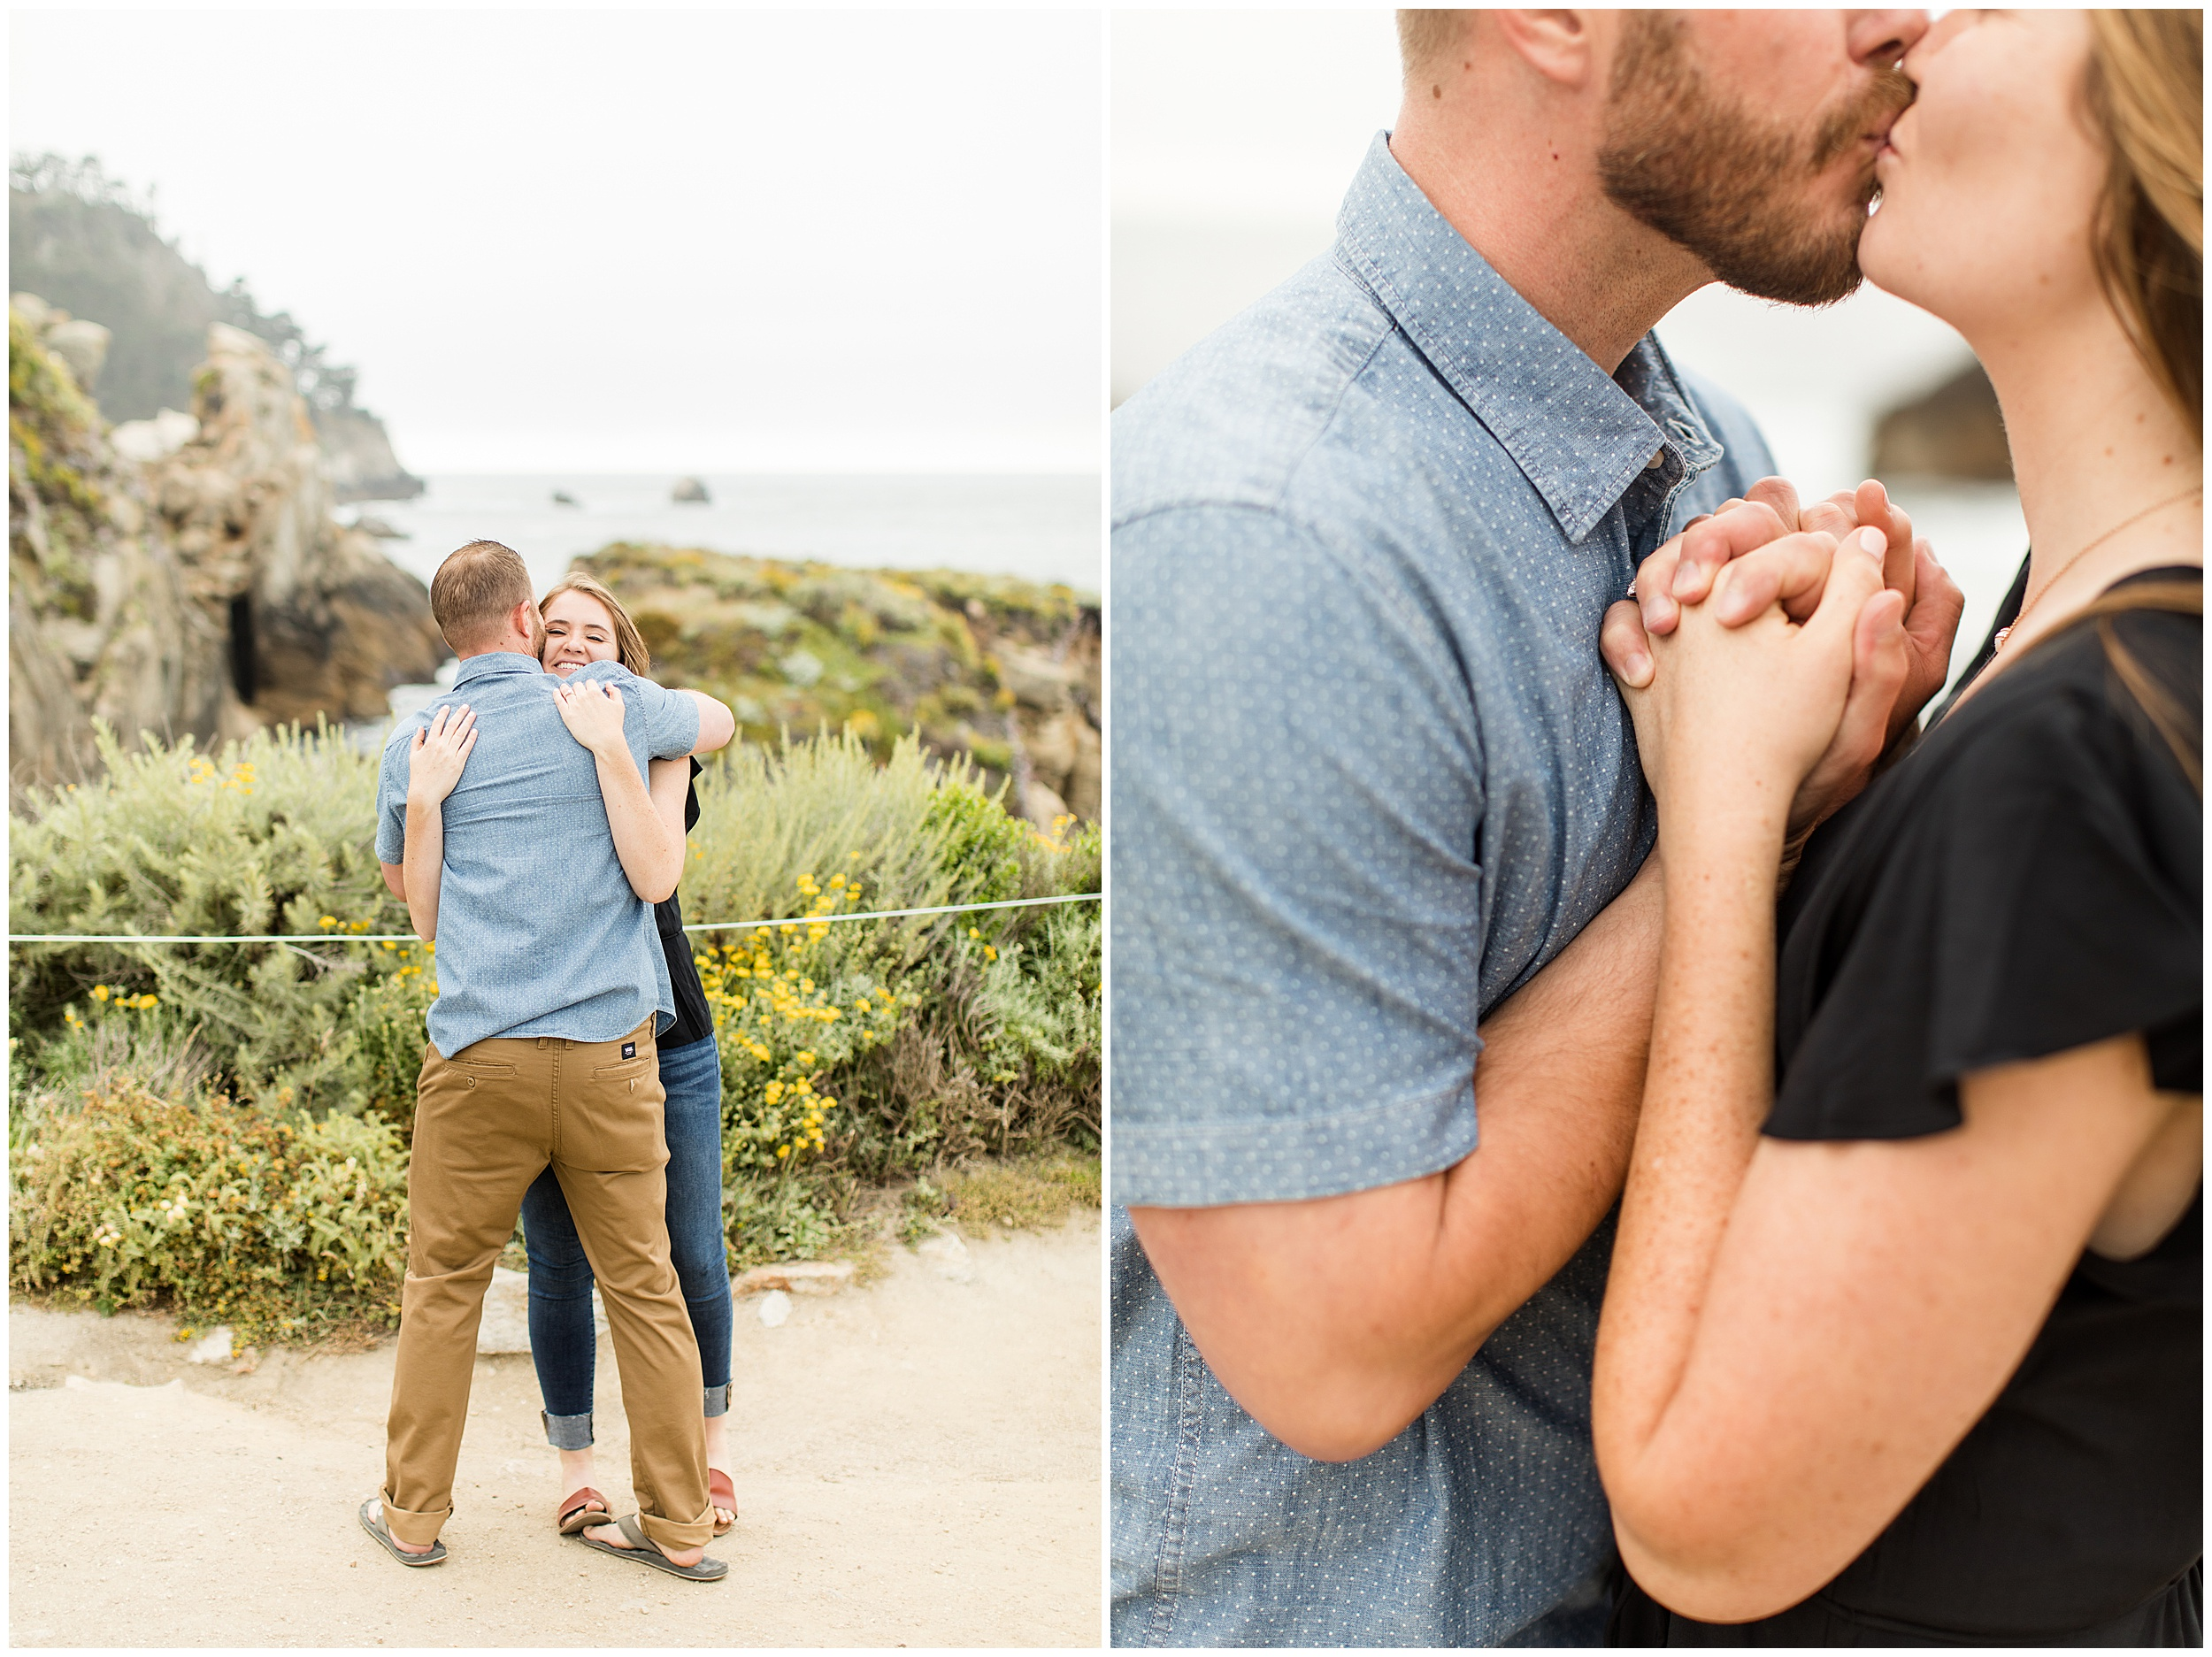 2019 carmel by the sea surprise proposal engagement session wedding photographer angela sue photography_0010.jpg